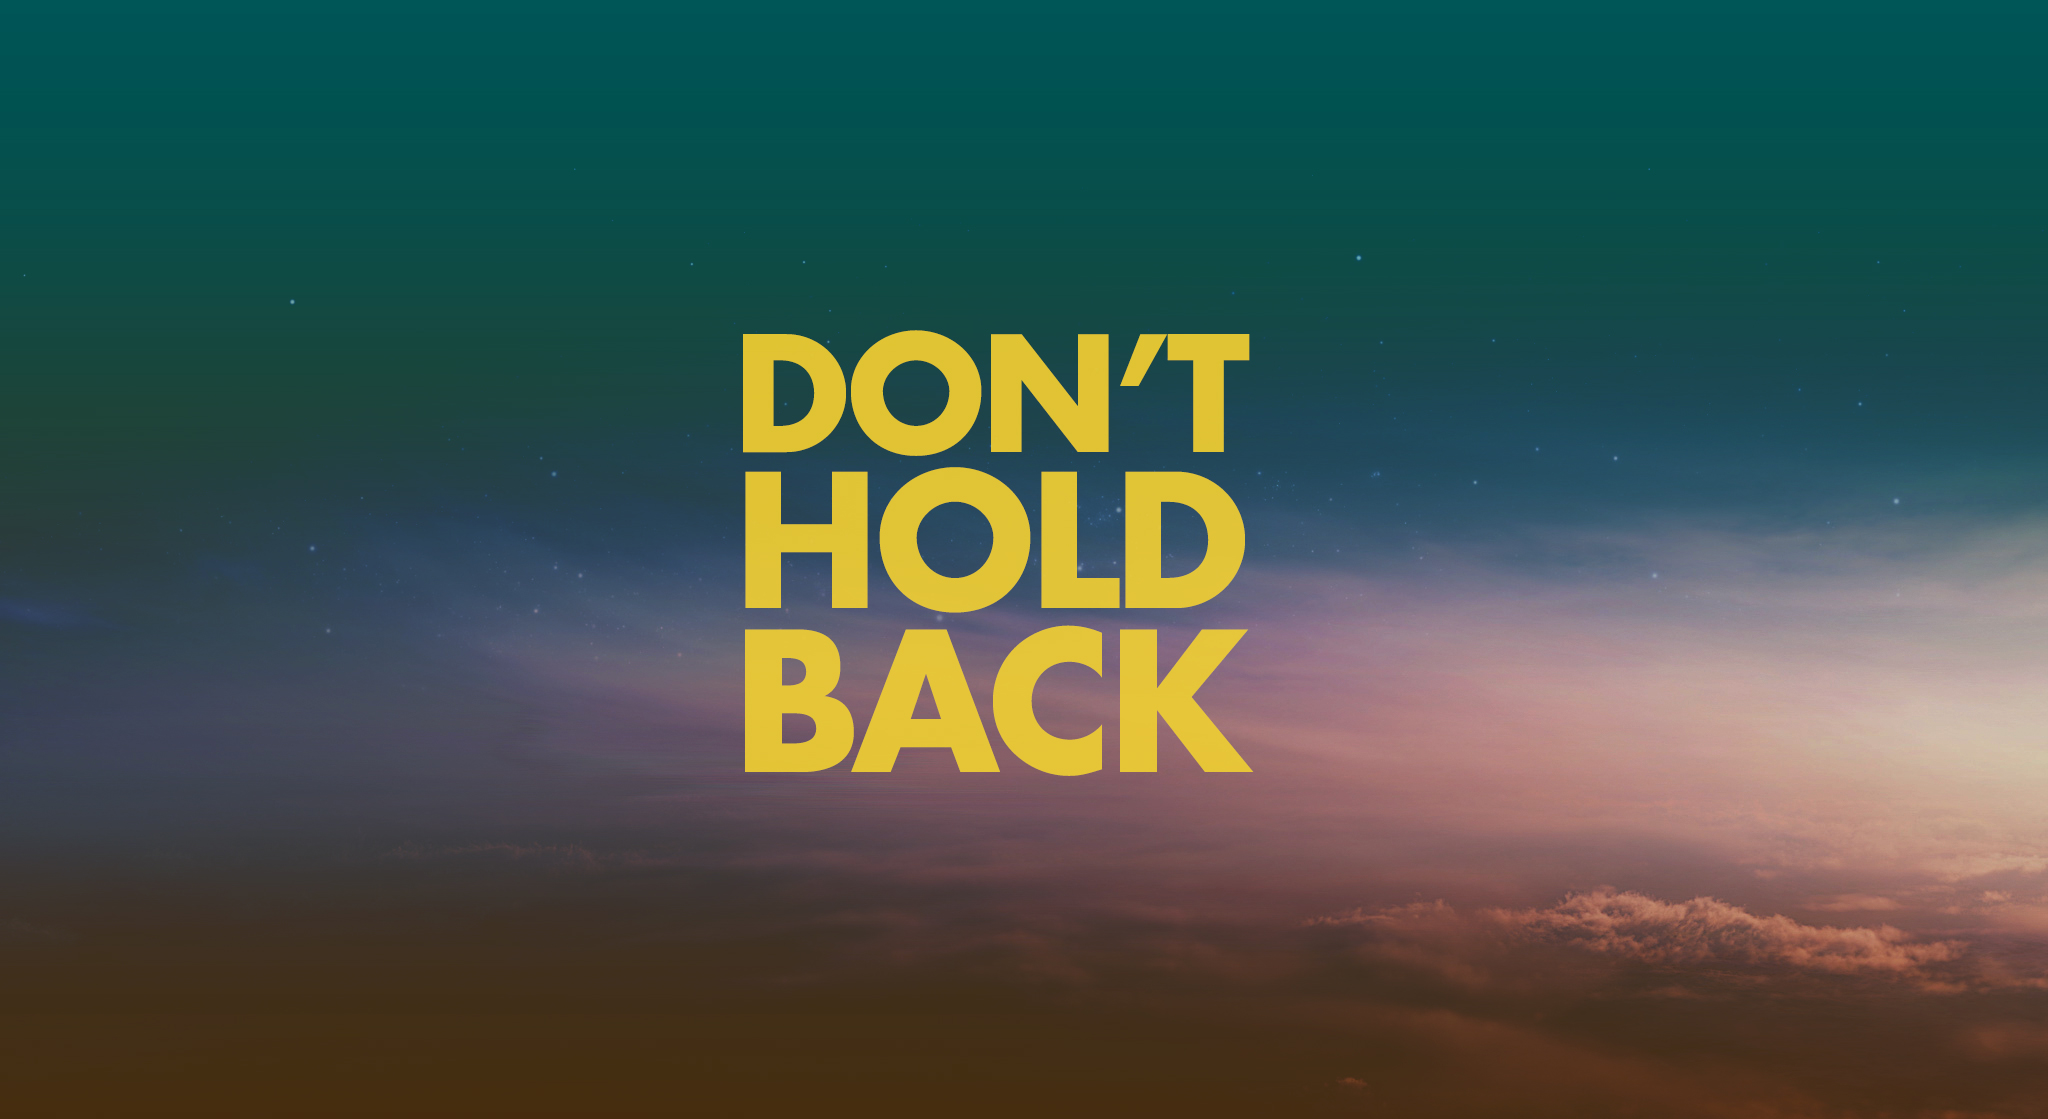 dont-hold-back-1